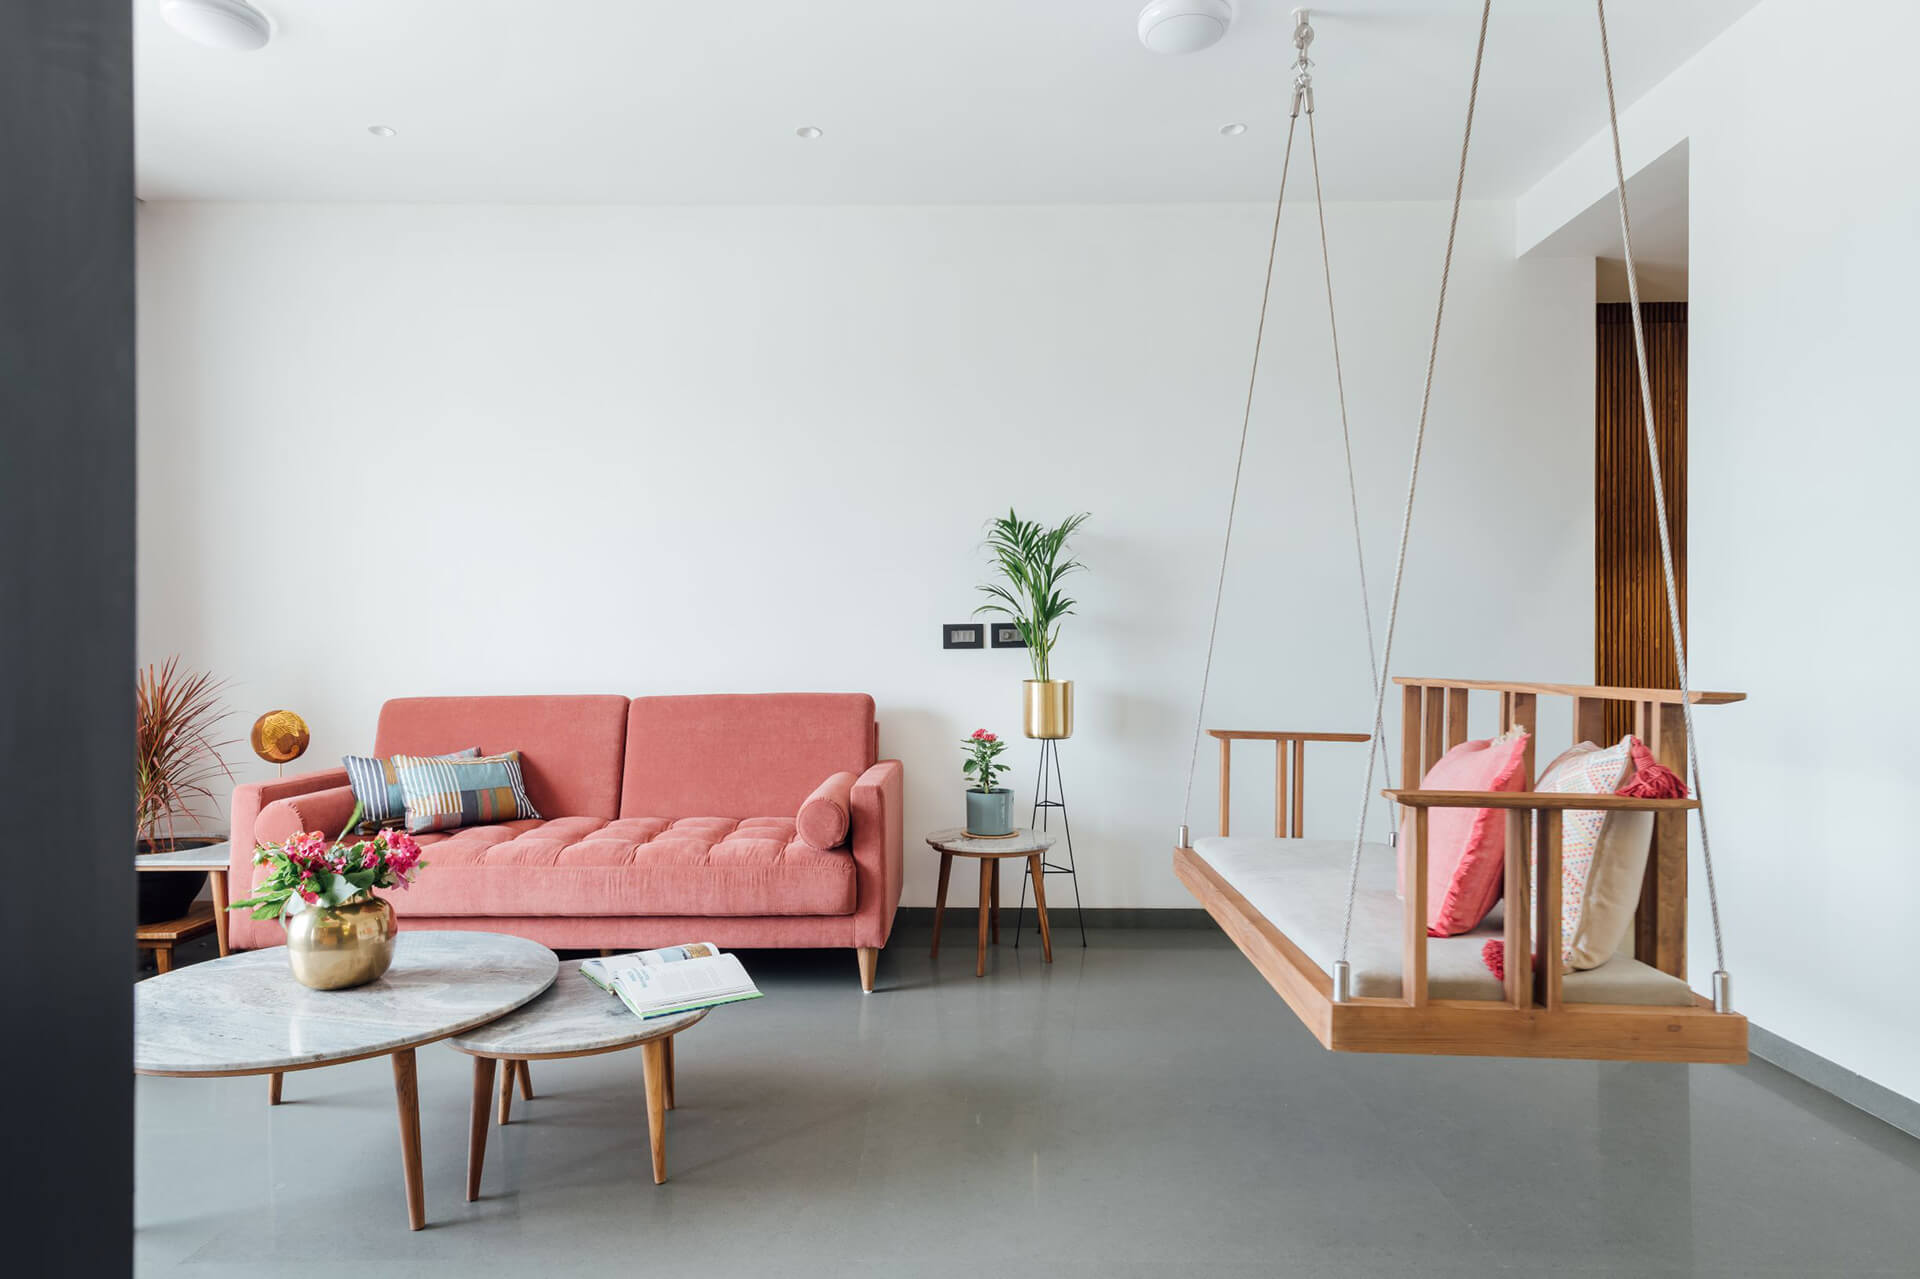 Living room with coral pink cushions and a swing | Neogenesis + Studi0261 | India | STIRworld